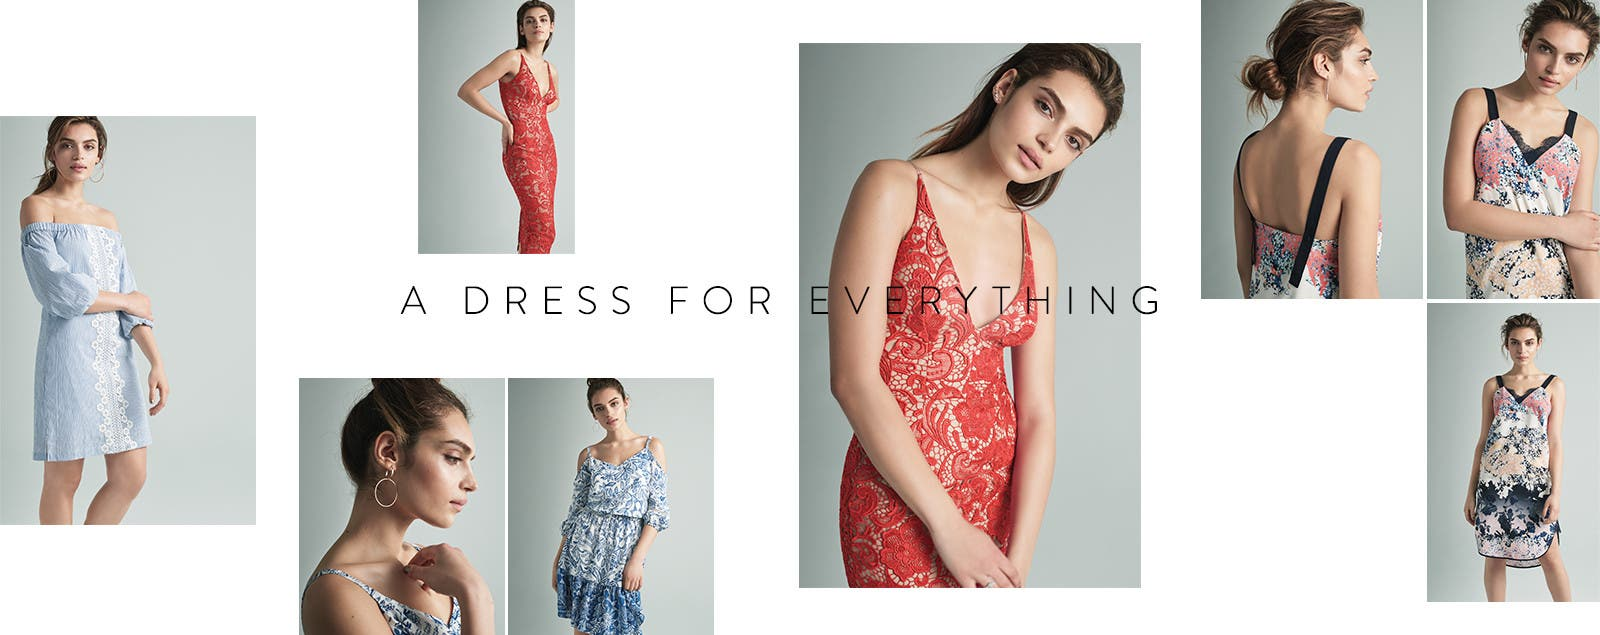 A dress for every spring event.